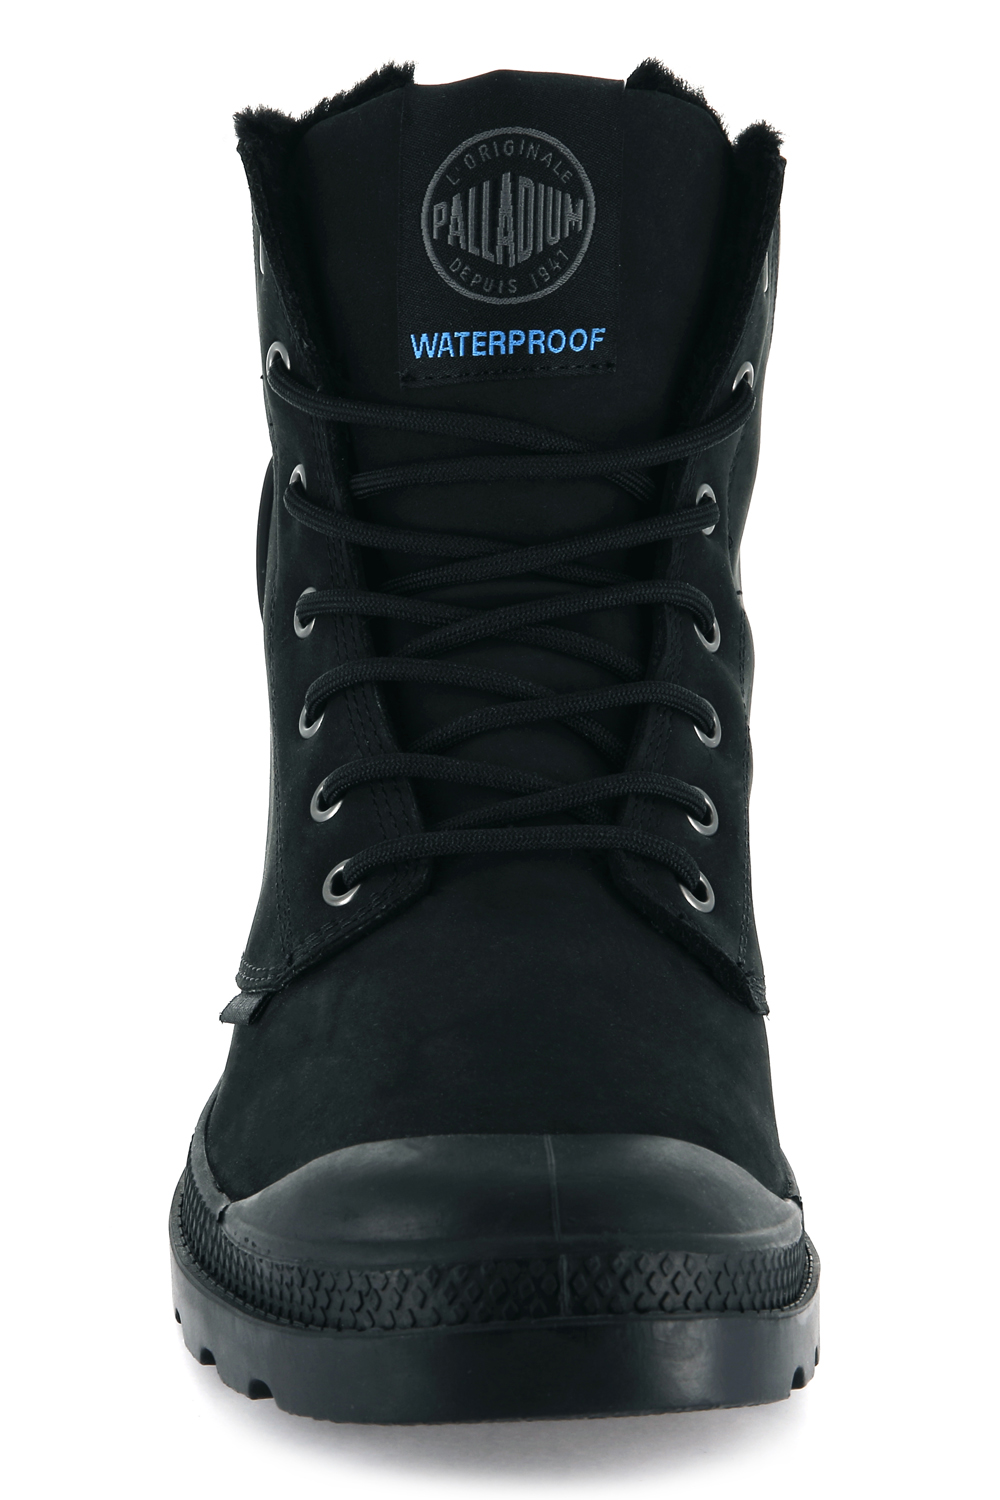 Palladium-Mens-Pampa-Sport-Cuff-Waterproof-Suede-Leather-Shoe-Wool-Lined-Boots thumbnail 5